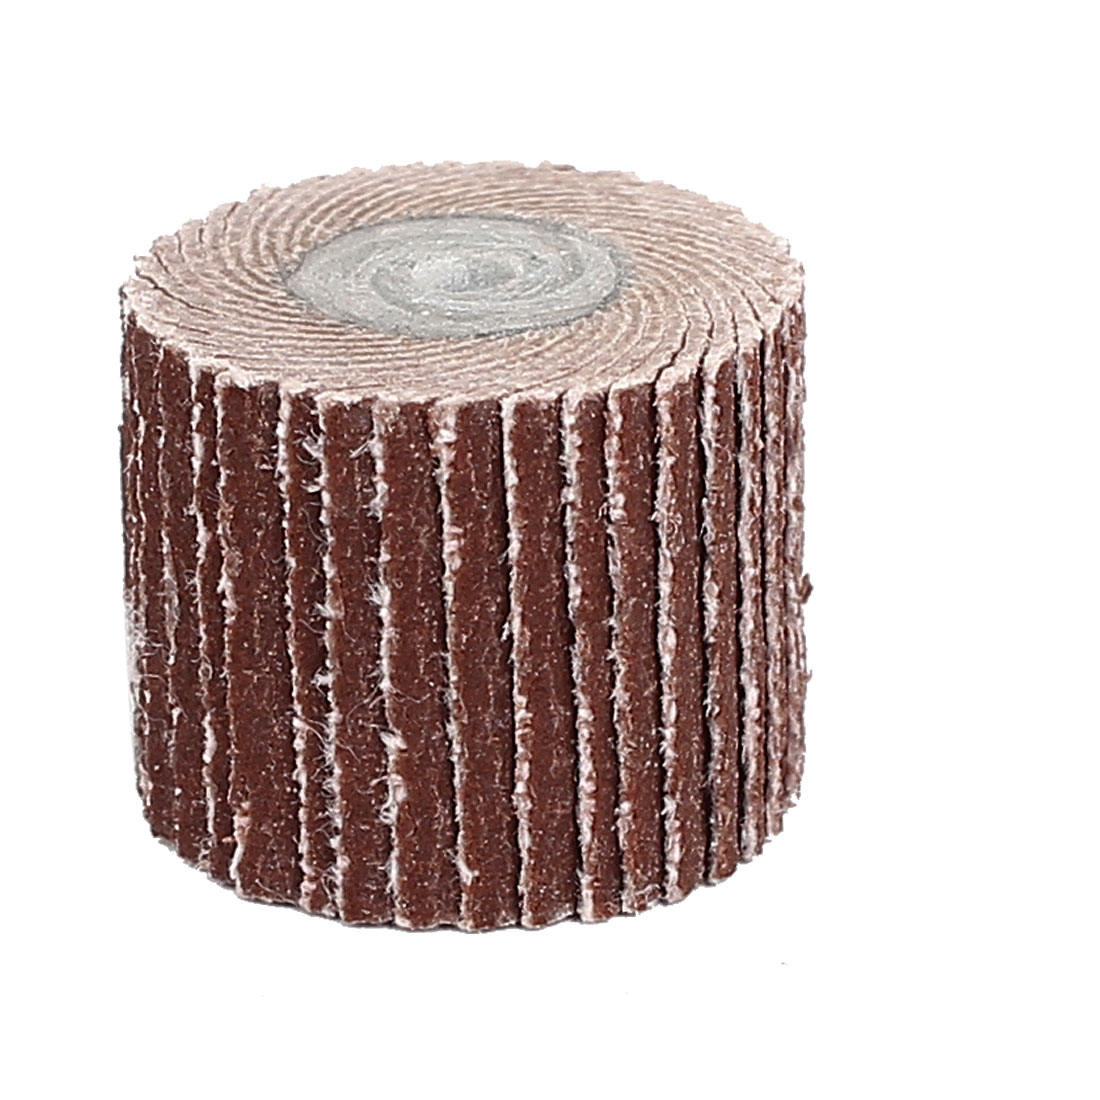 16mmx14mm Sandpaper Grinding Mounted Point Flap Wheel